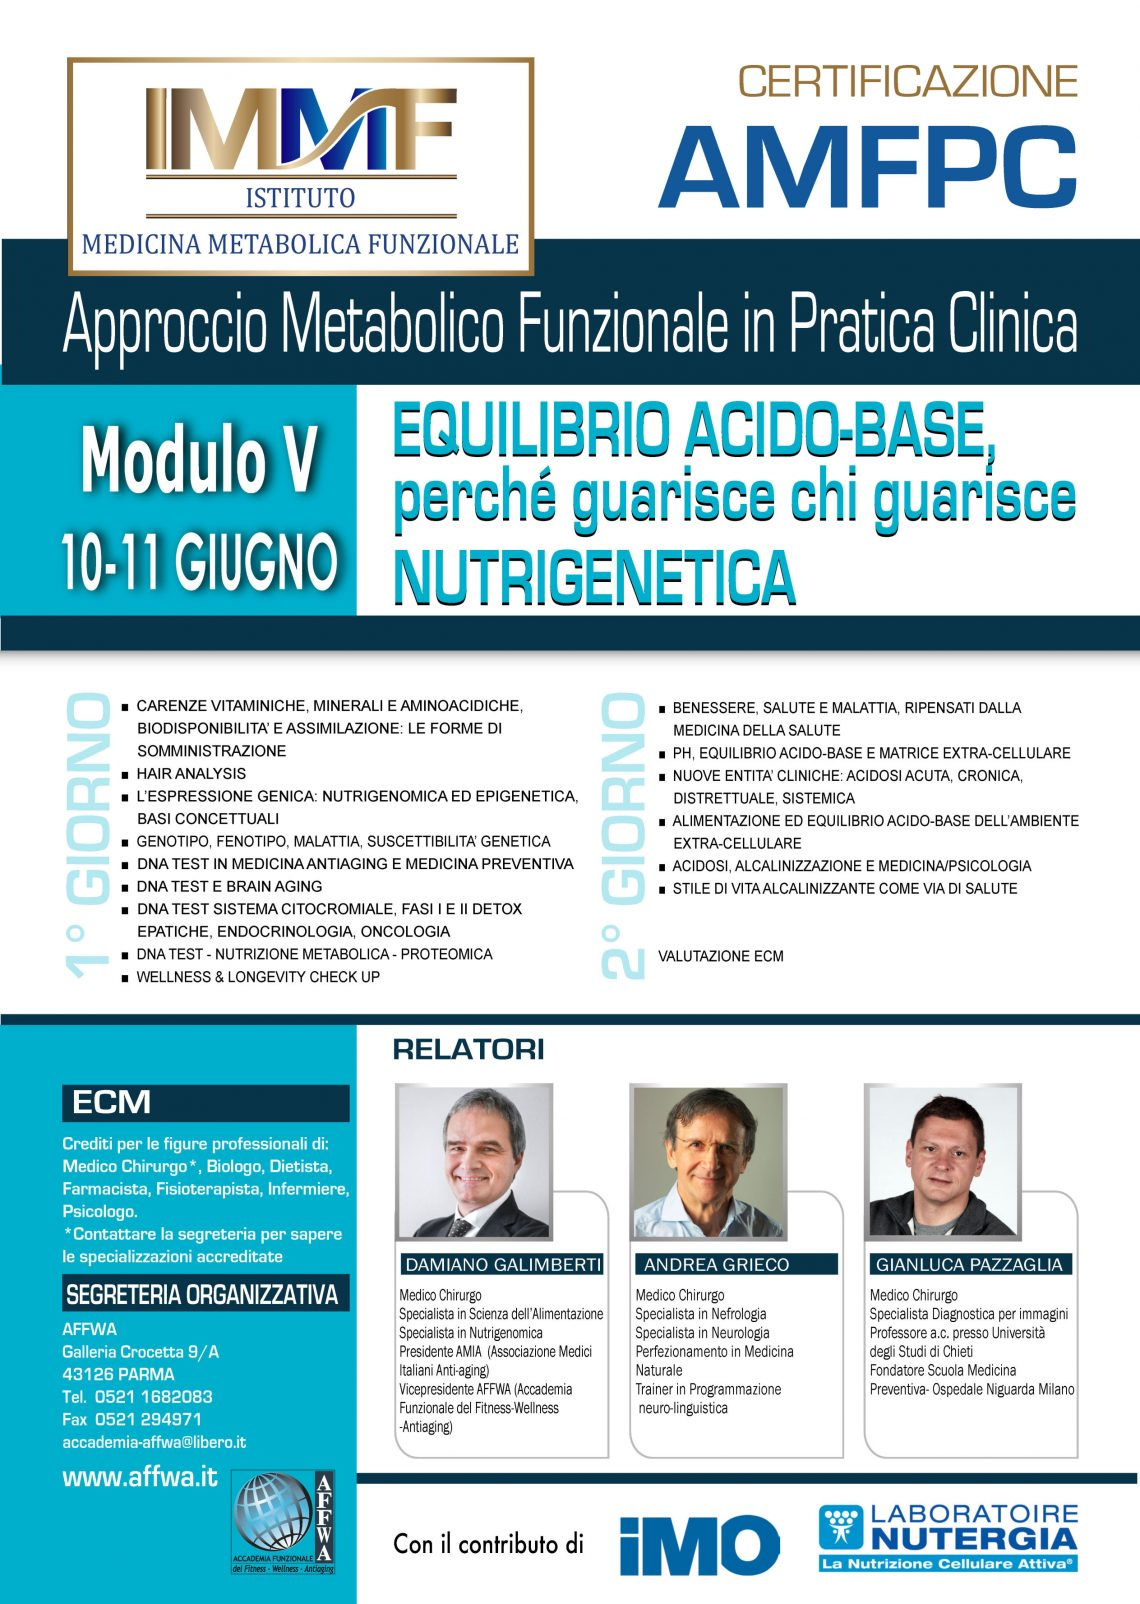 EQUILIBRIO ACIDO-BASE, PERCHE' GUARISCE CHI GUARISCE – NUTRIGENITICA